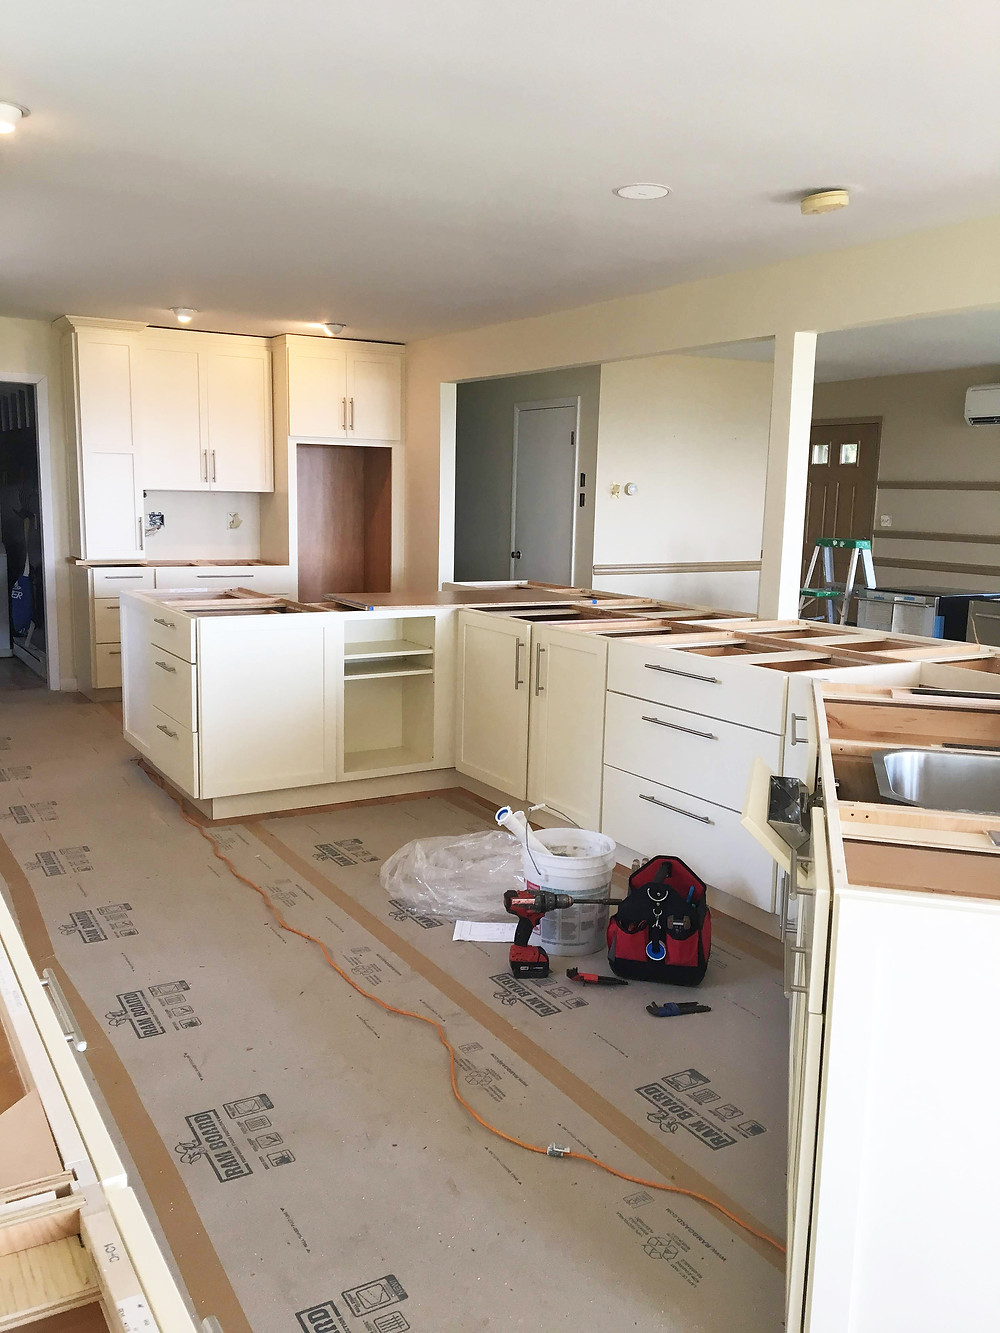 How Much Should You Be Spending On Your Remodeling Project